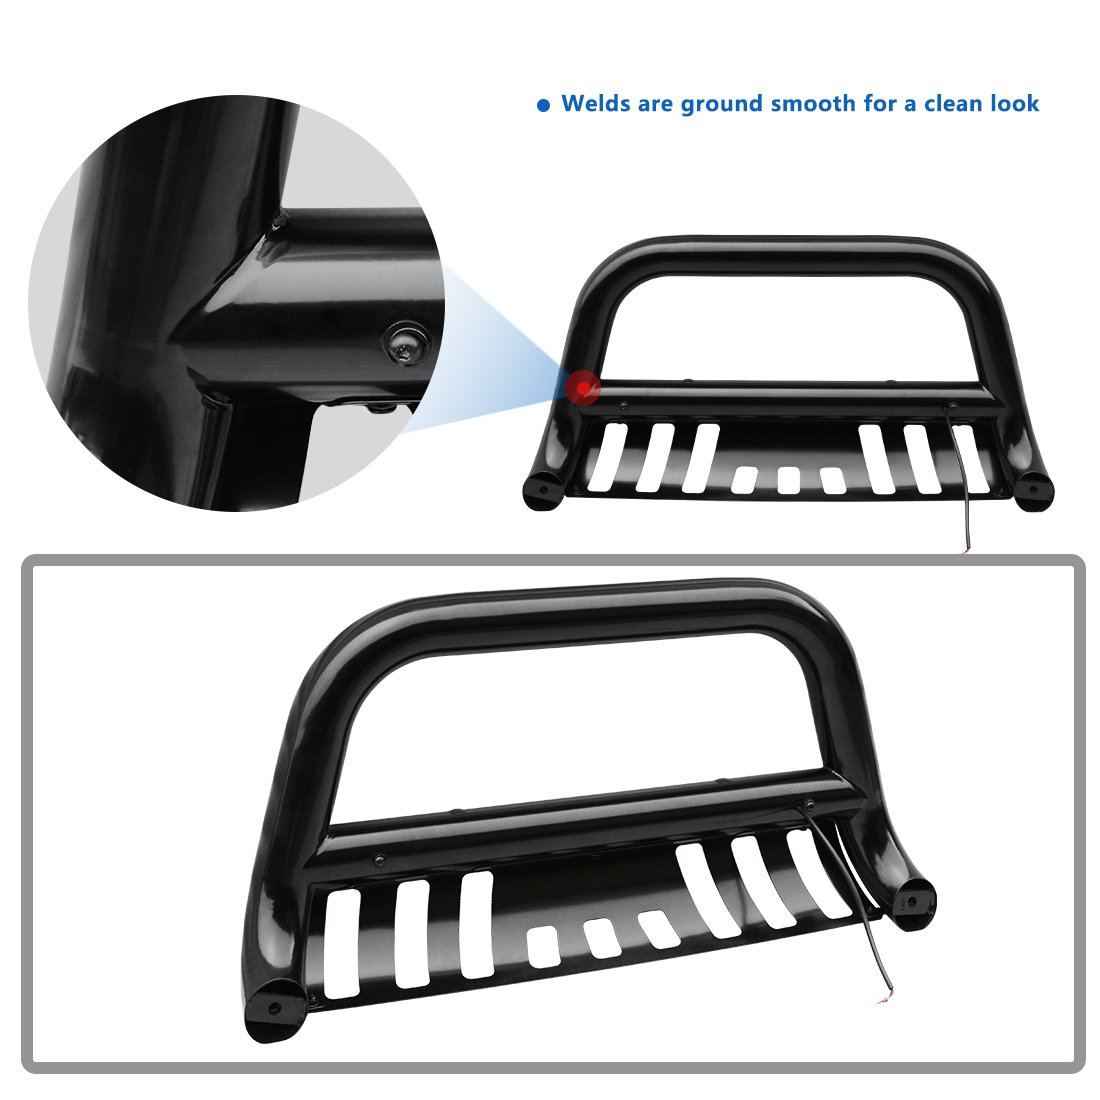 AUTOSAVER88 Bull Bar Compatible for 04-18 Ford F150 Black HD Heavyduty 3 Tube Brush Push Front Bumper Grill Grille Guard with Skid Plate Q235A